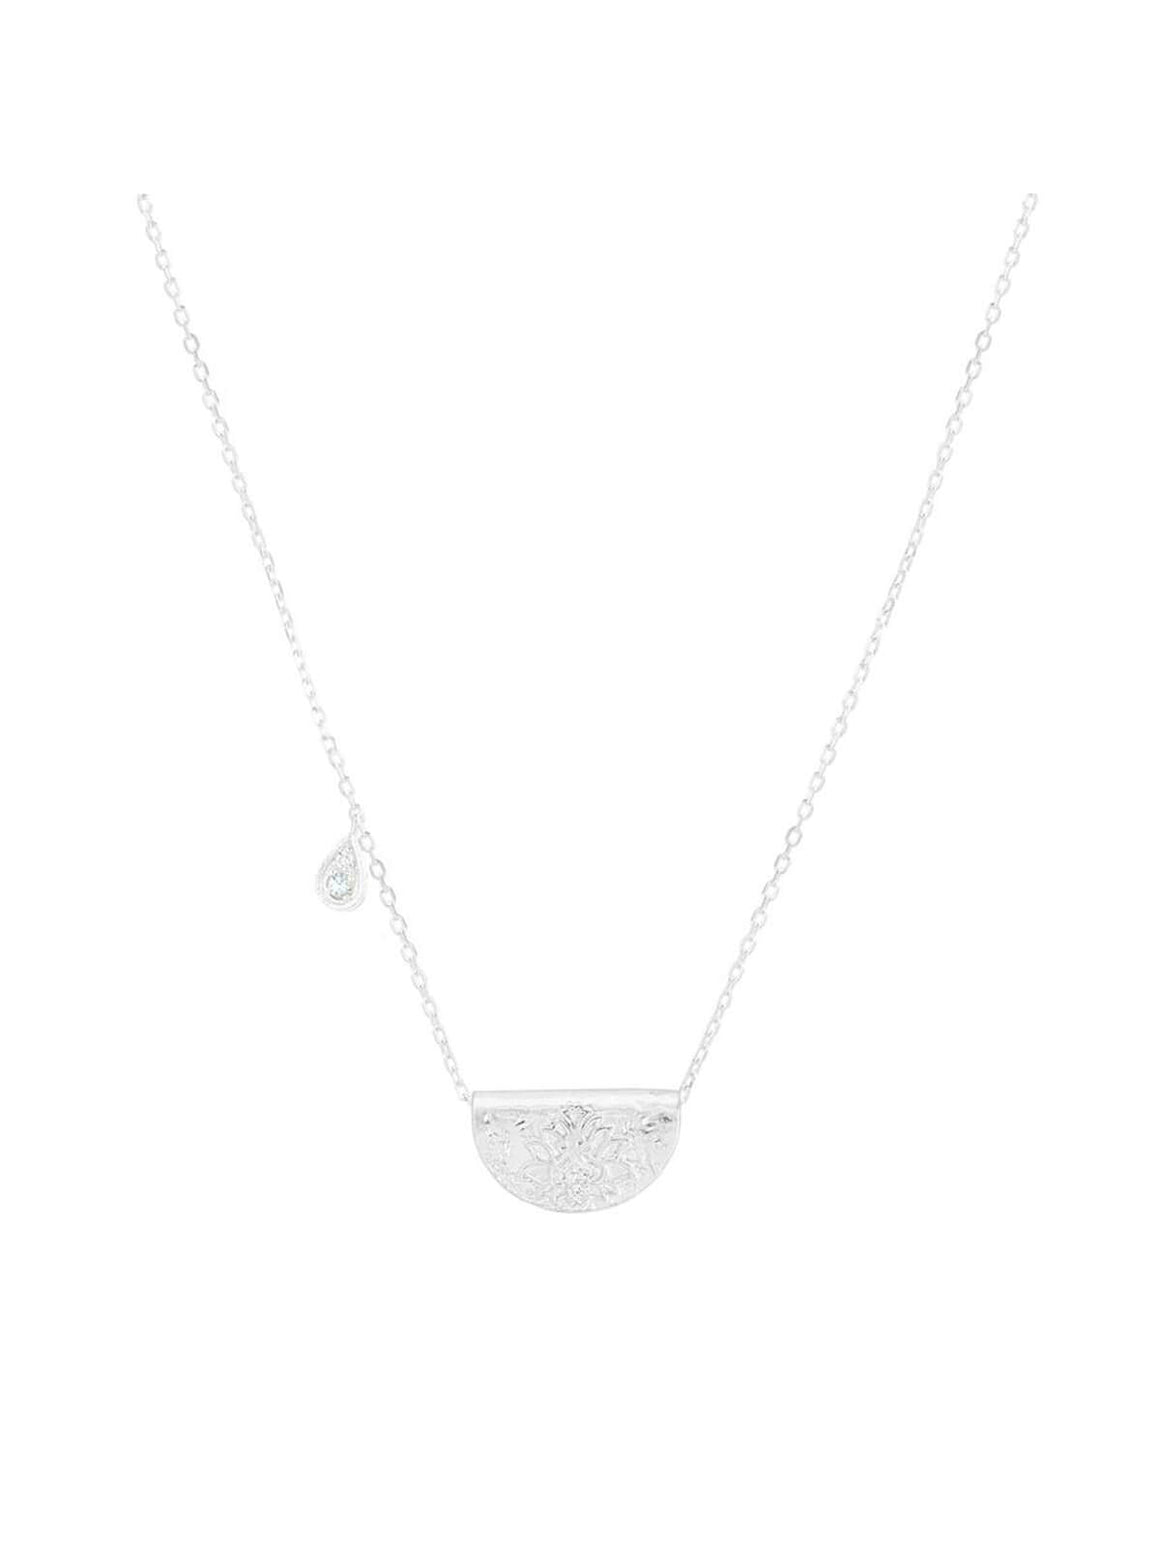 By Charlotte Calm Your Soul Necklace | Perlu